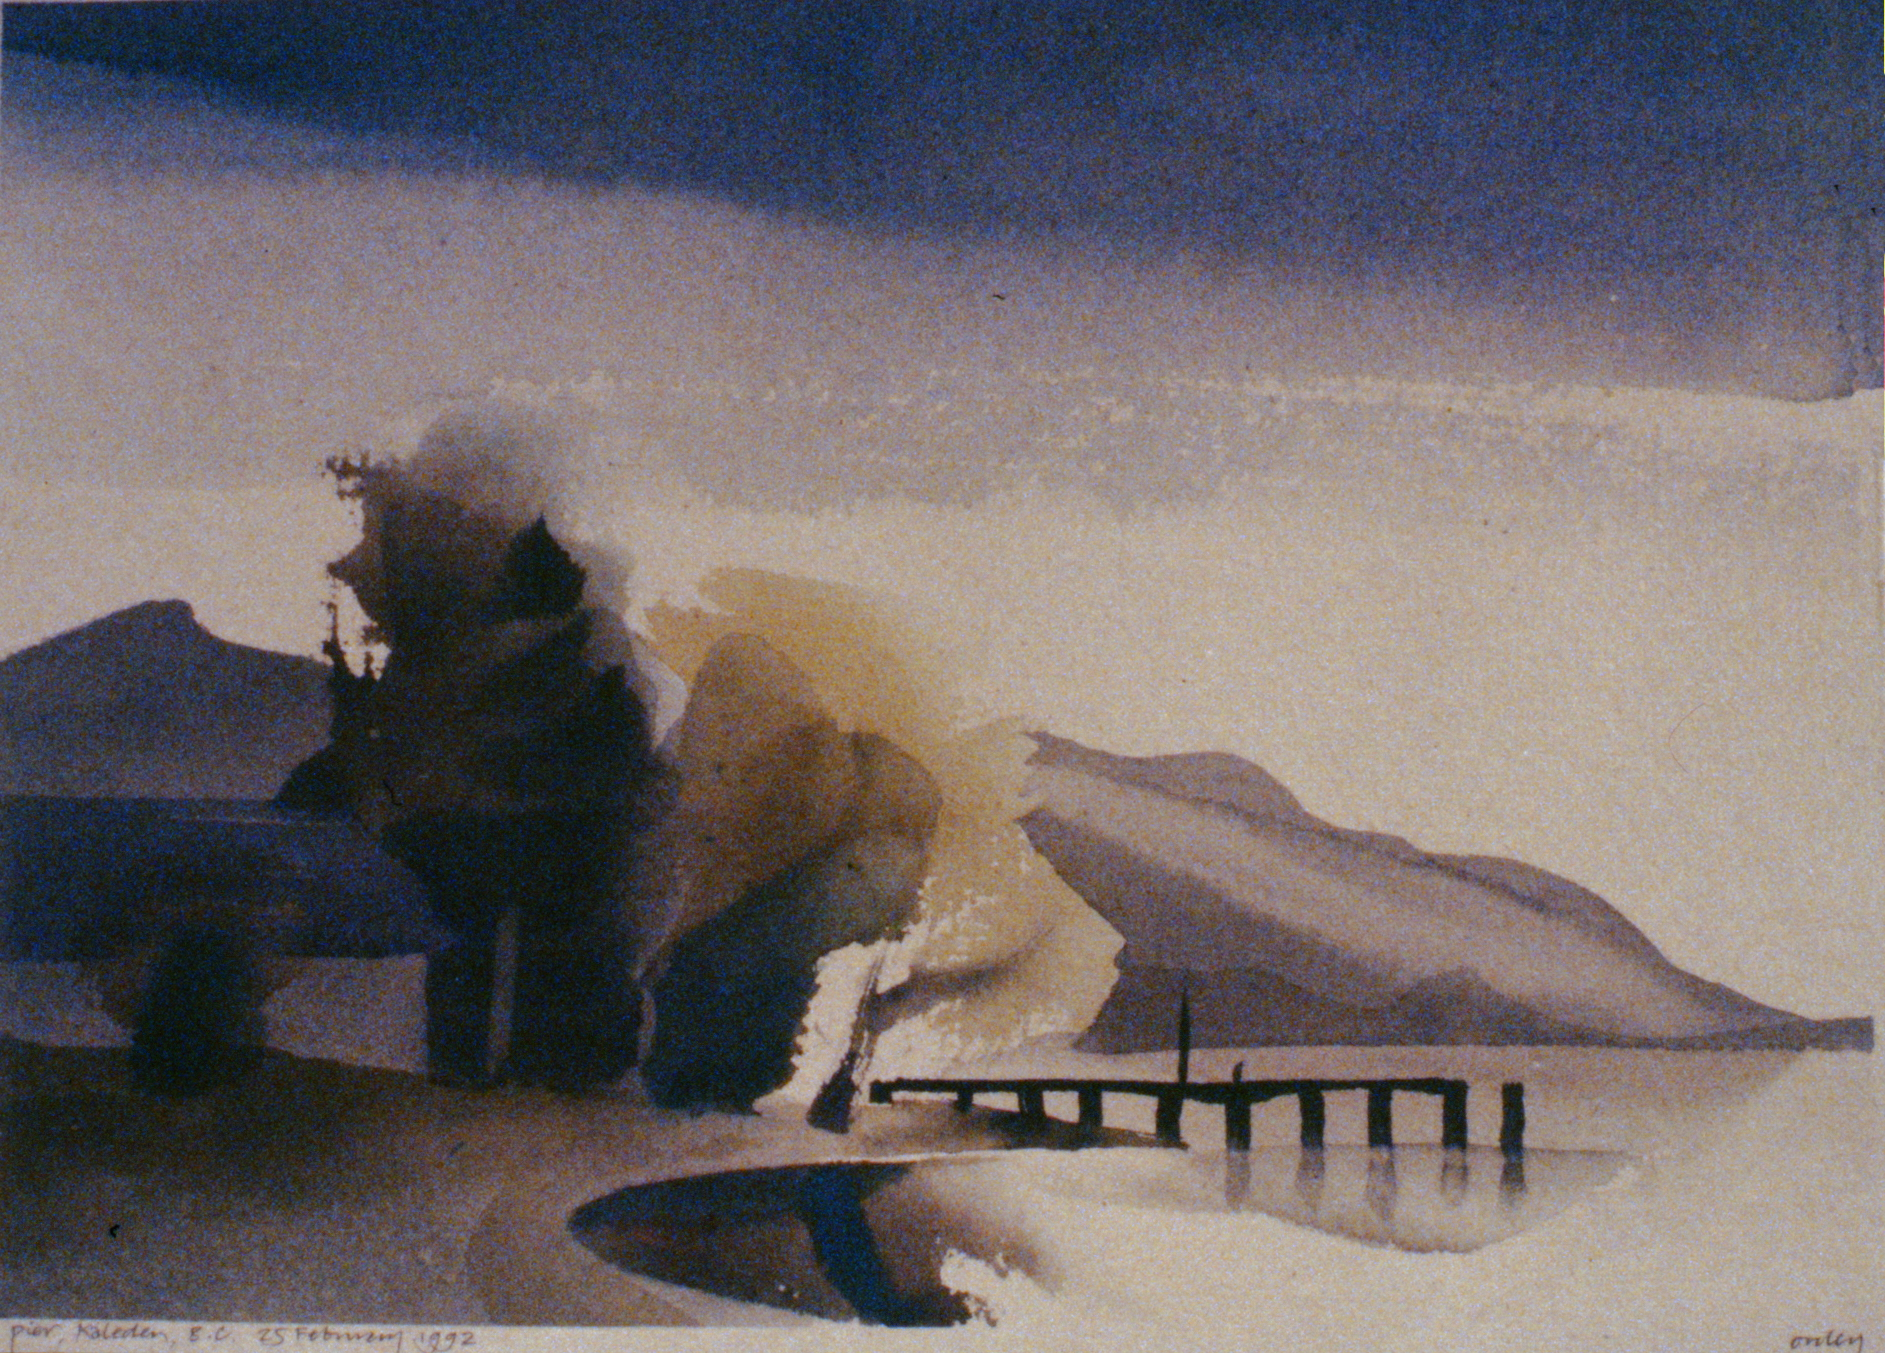 Pier, Kaleden, BC , February 25th, 1992, Toni Onley, watercolour on paper 27.2 x 37.7 cm, 1994.15.08. Gift of the artist.